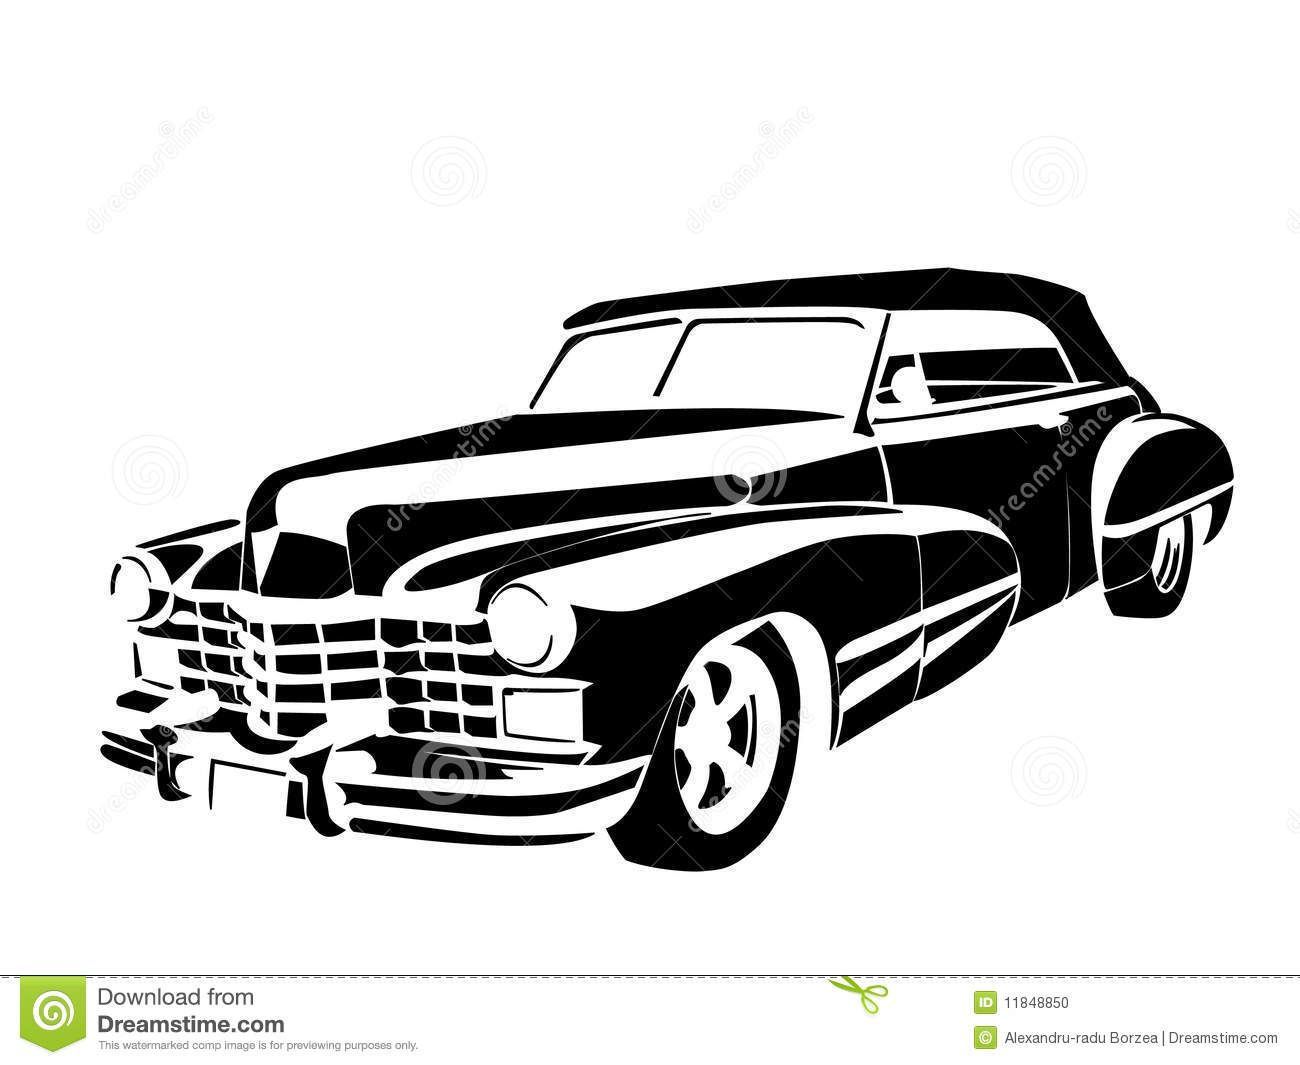 Ford pickup truck clipart as well 339107046913658870 besides Old Pickup Truck Coloring Pages together with How To Draw A Gmc Pickup Truck furthermore Clipart Police Car. on old chevy truck drawings front